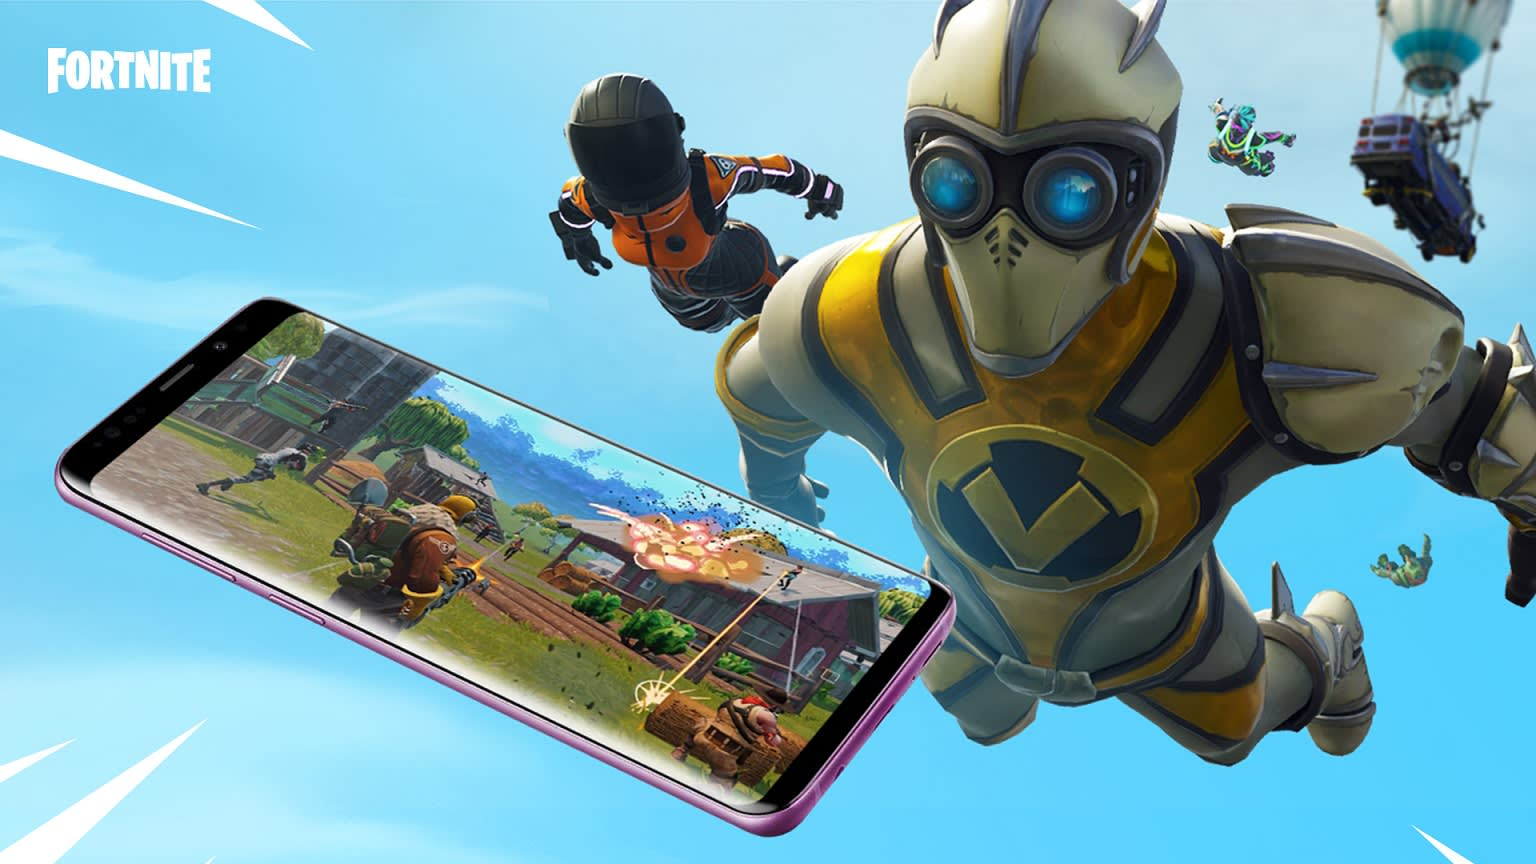 Fortnite Is Now Available On Samsung Galaxy Phones